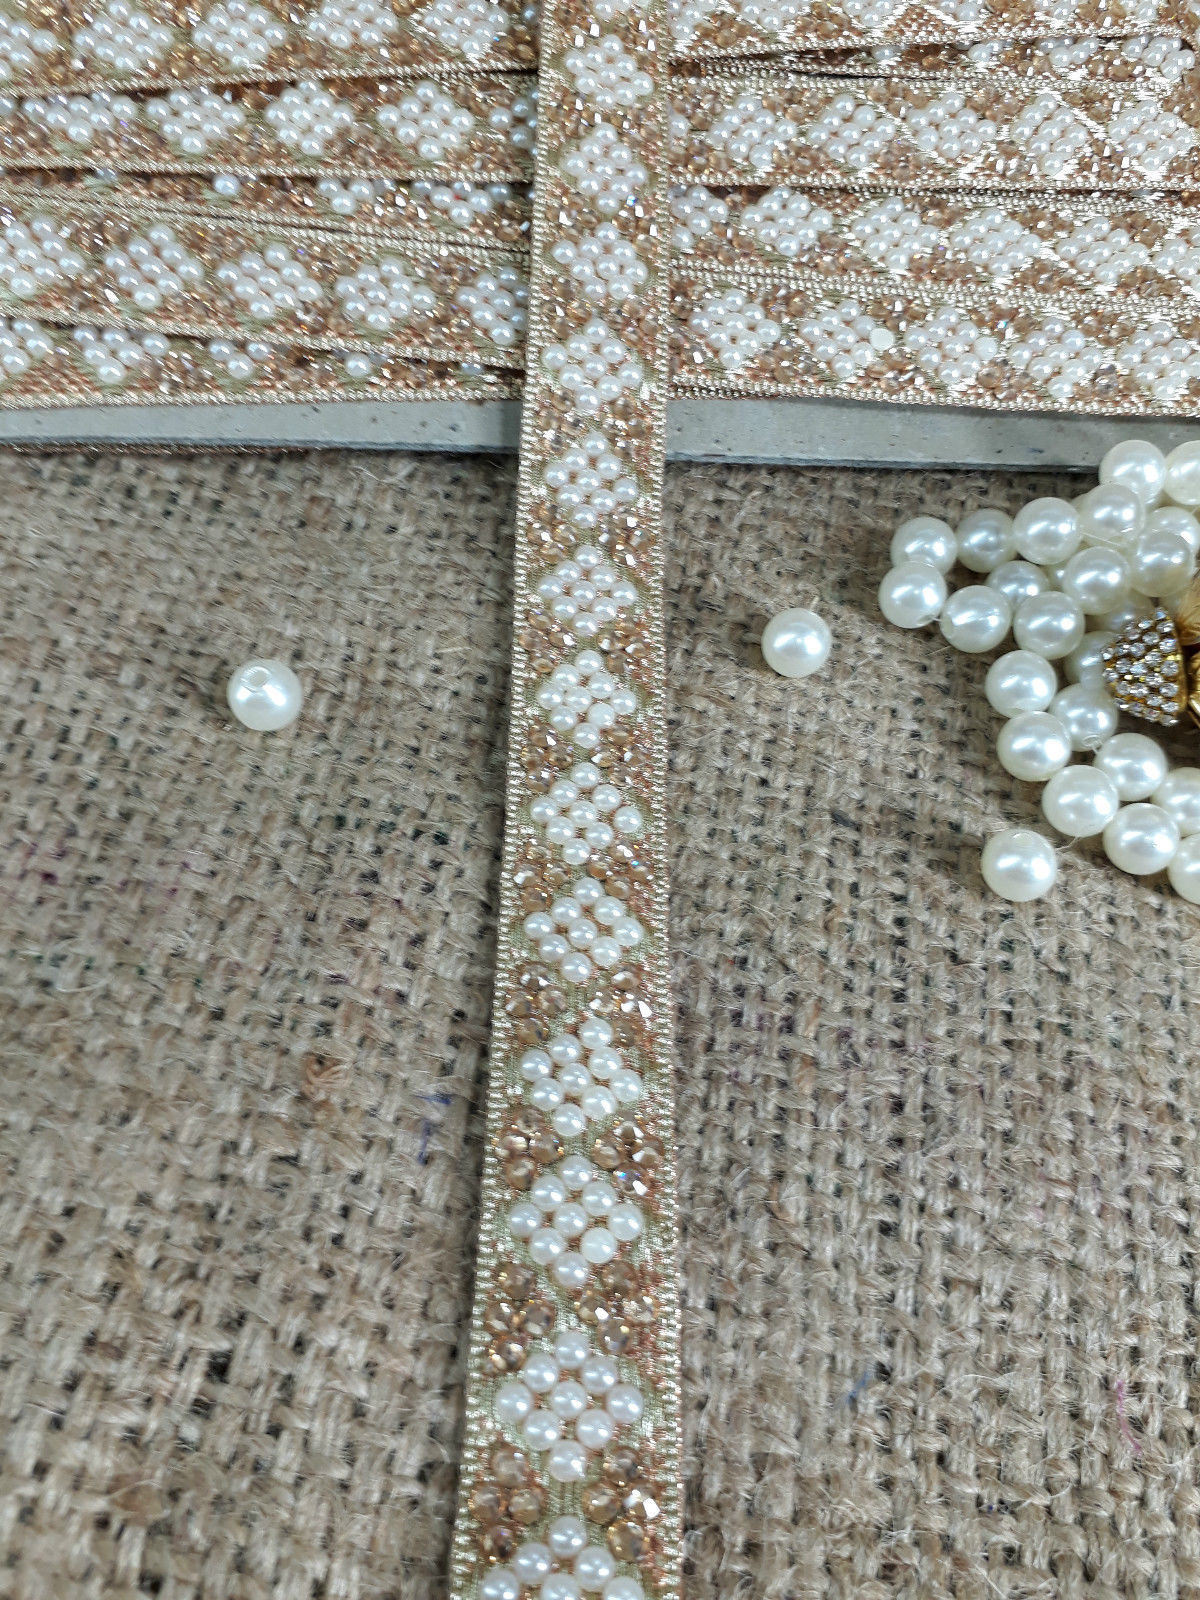 wholesale wood trim suppliers gold lace applique Beige Gold, Off White, Brown Embroidered, Stone, Pearl Net Less than 4 inch